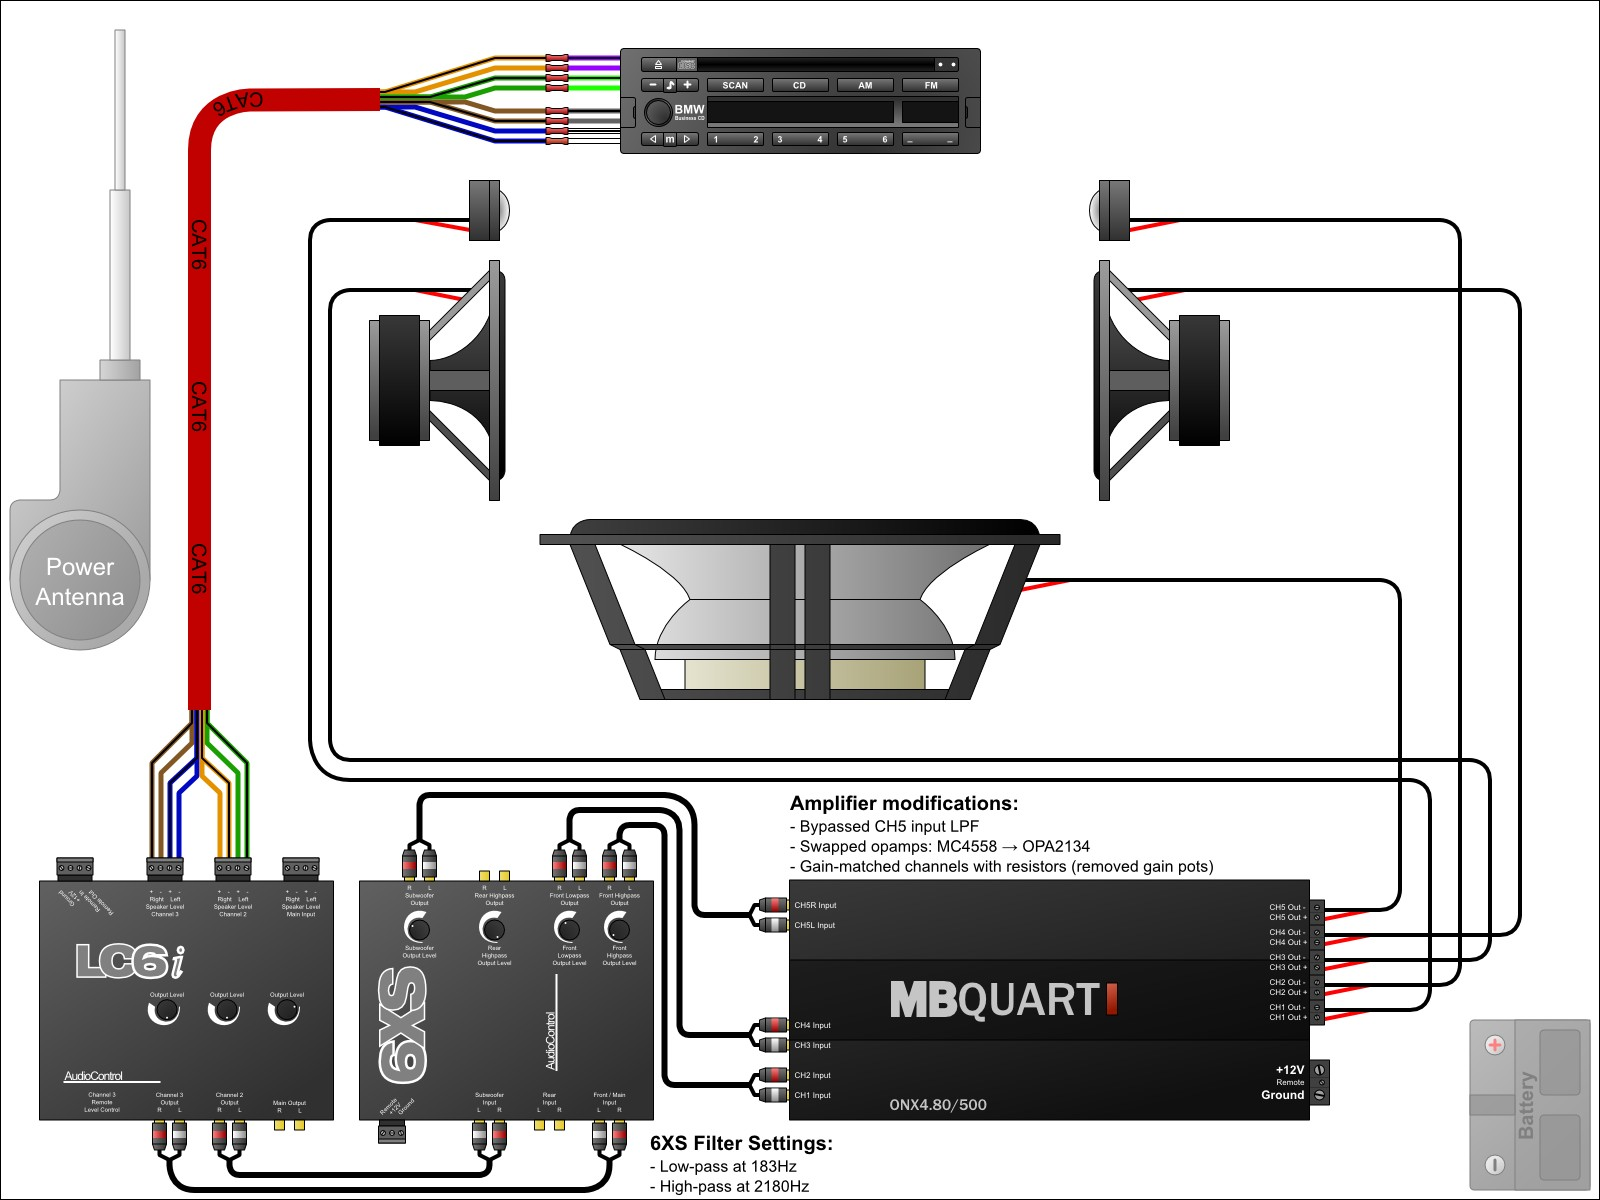 Car sound System Setup Diagram | My Wiring DIagram